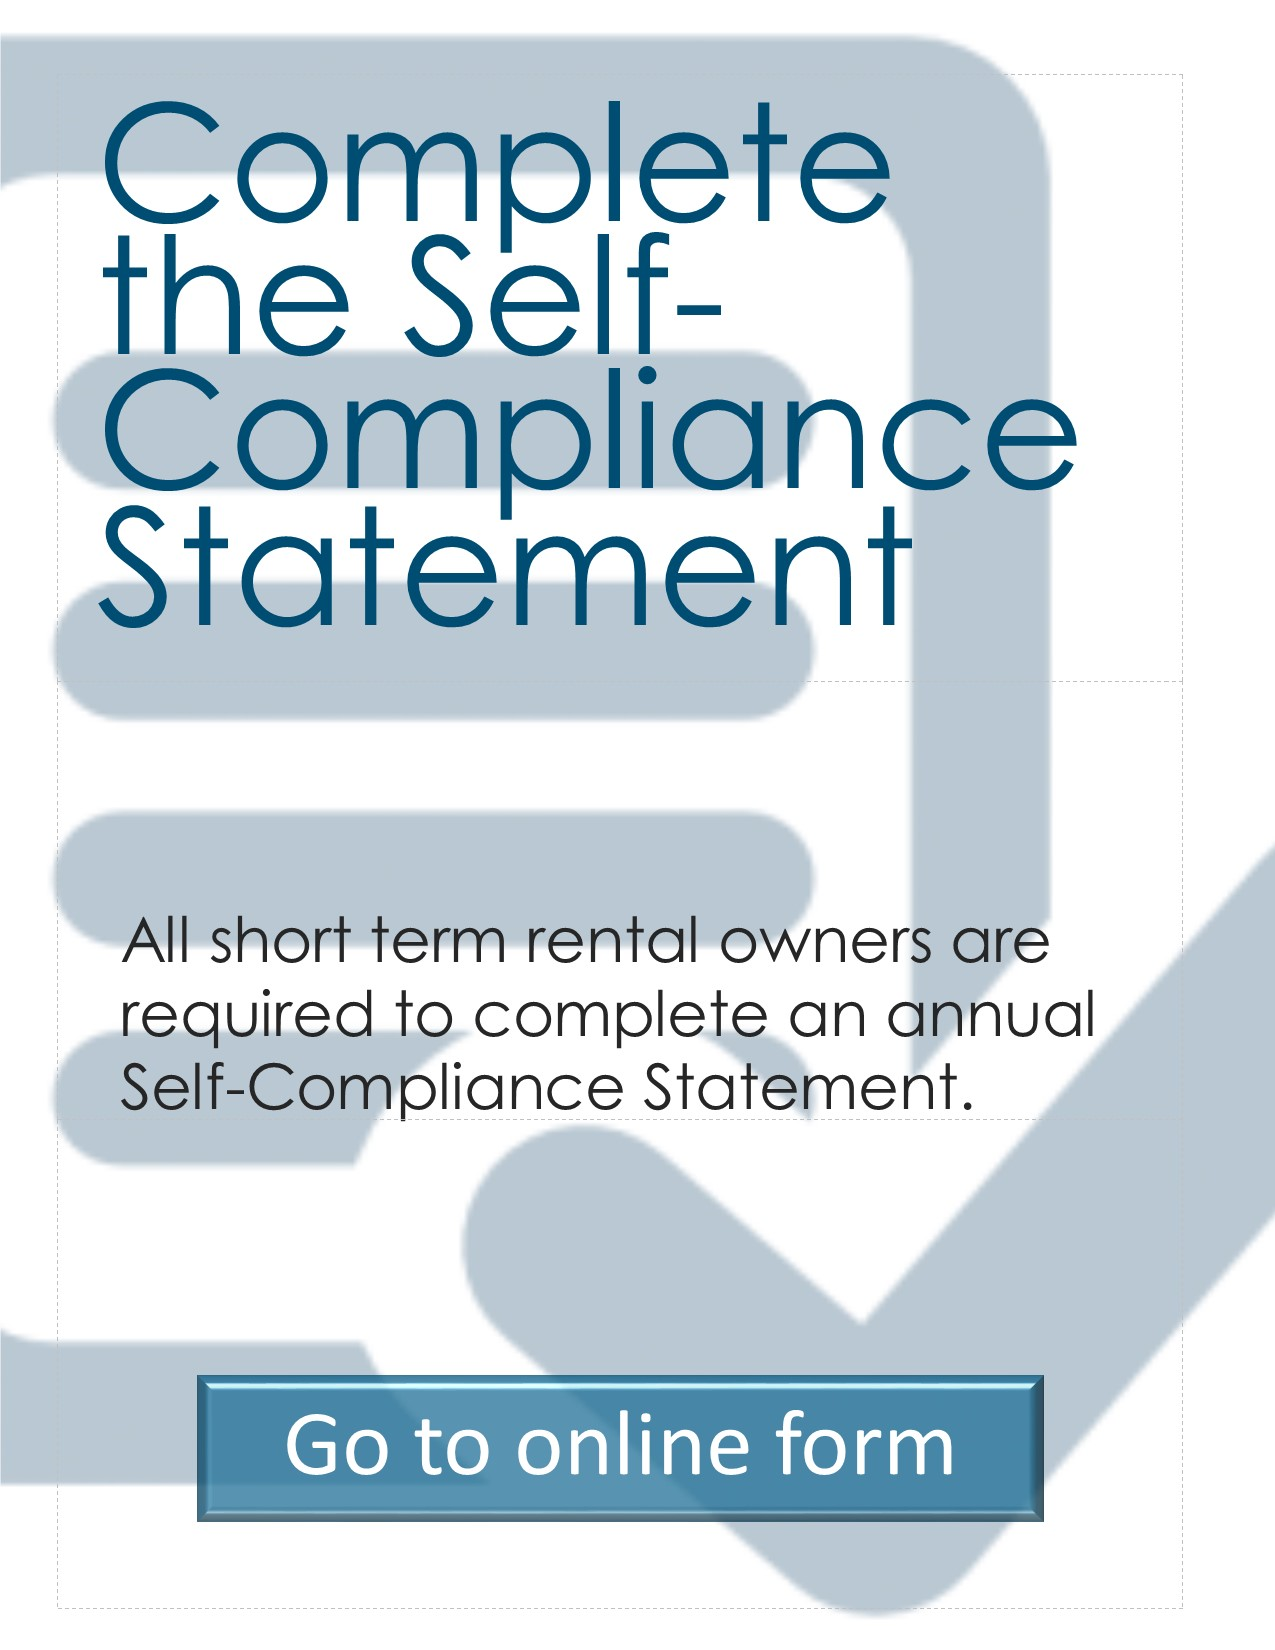 Self-Compliance Statement button